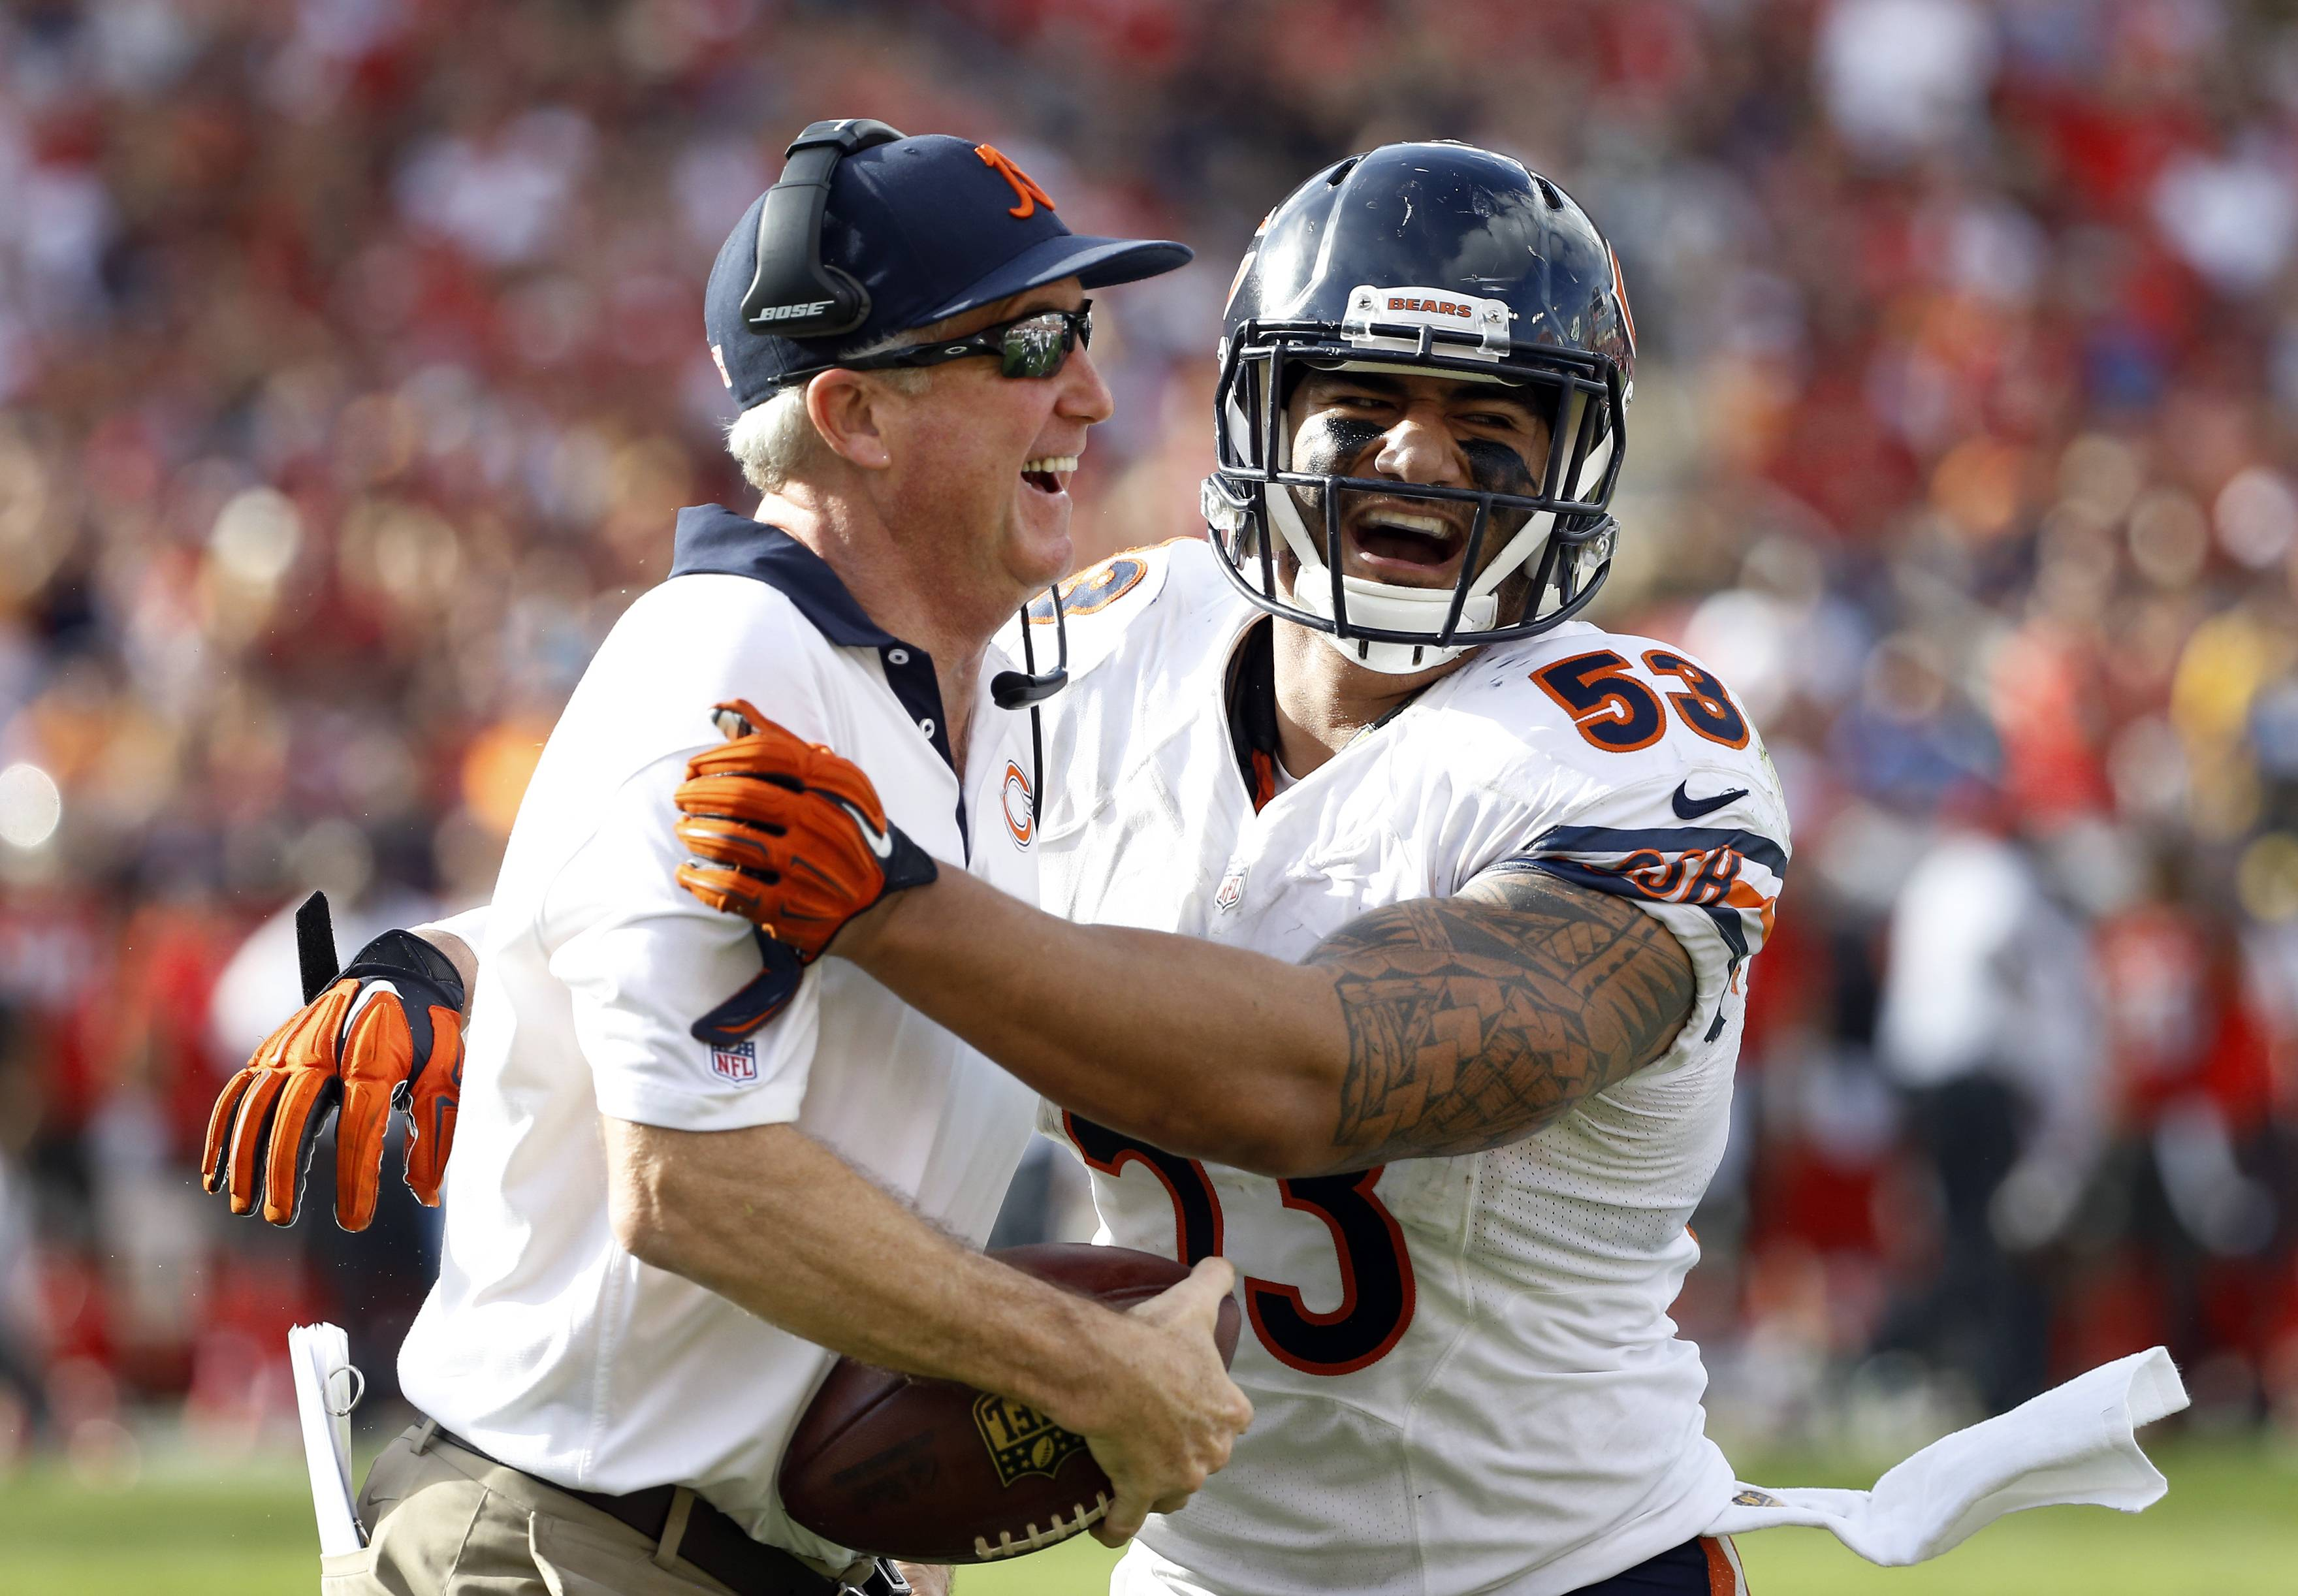 Images: The Bears defeat the Buccaneers 26-21